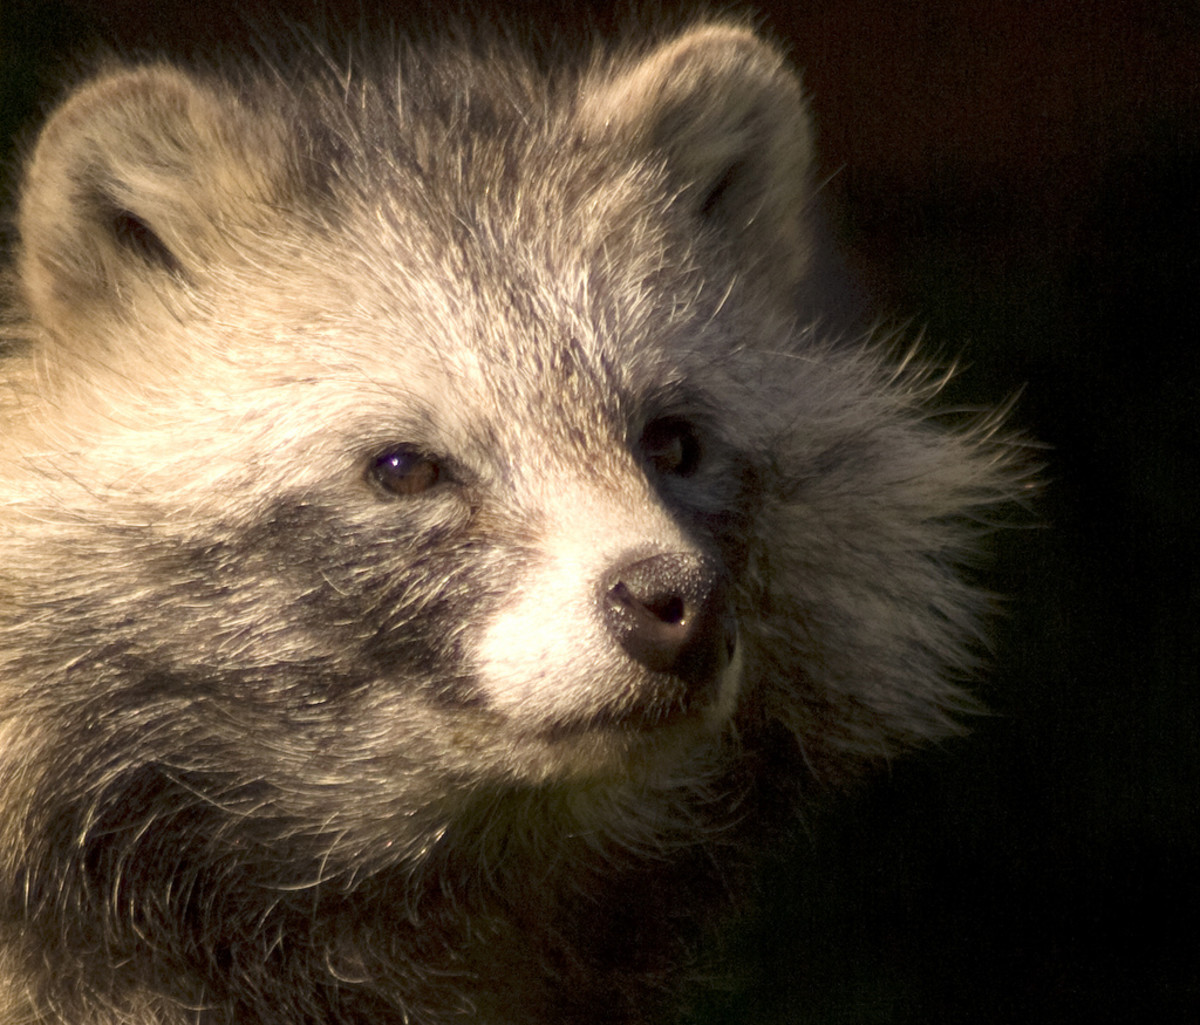 I just included this picture because I wanted to share it with you. It's a beautiful photo of an older raccoon. Notice how gray he is.